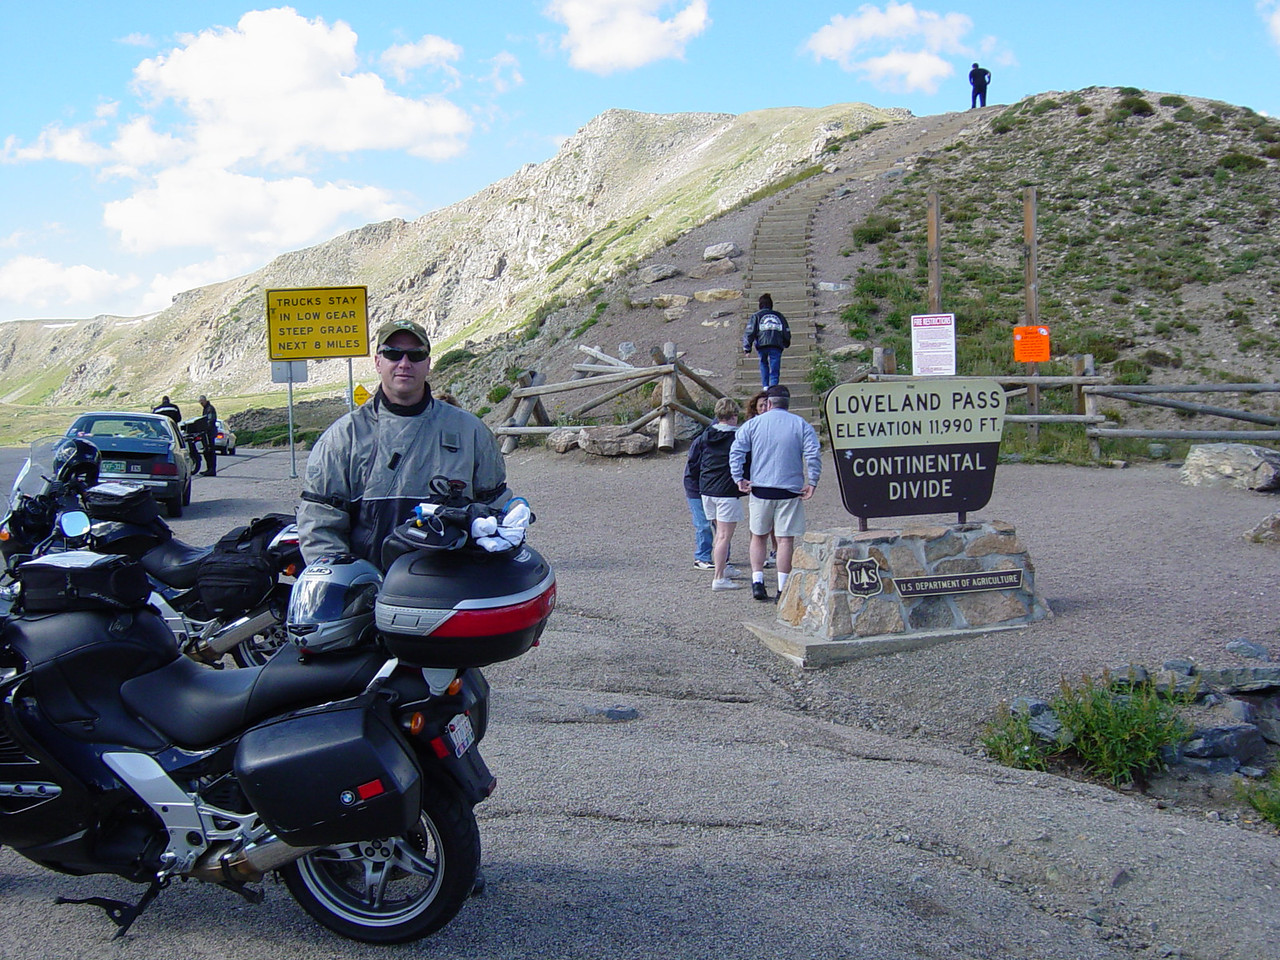 Dave Cooper at Loveland Pass.